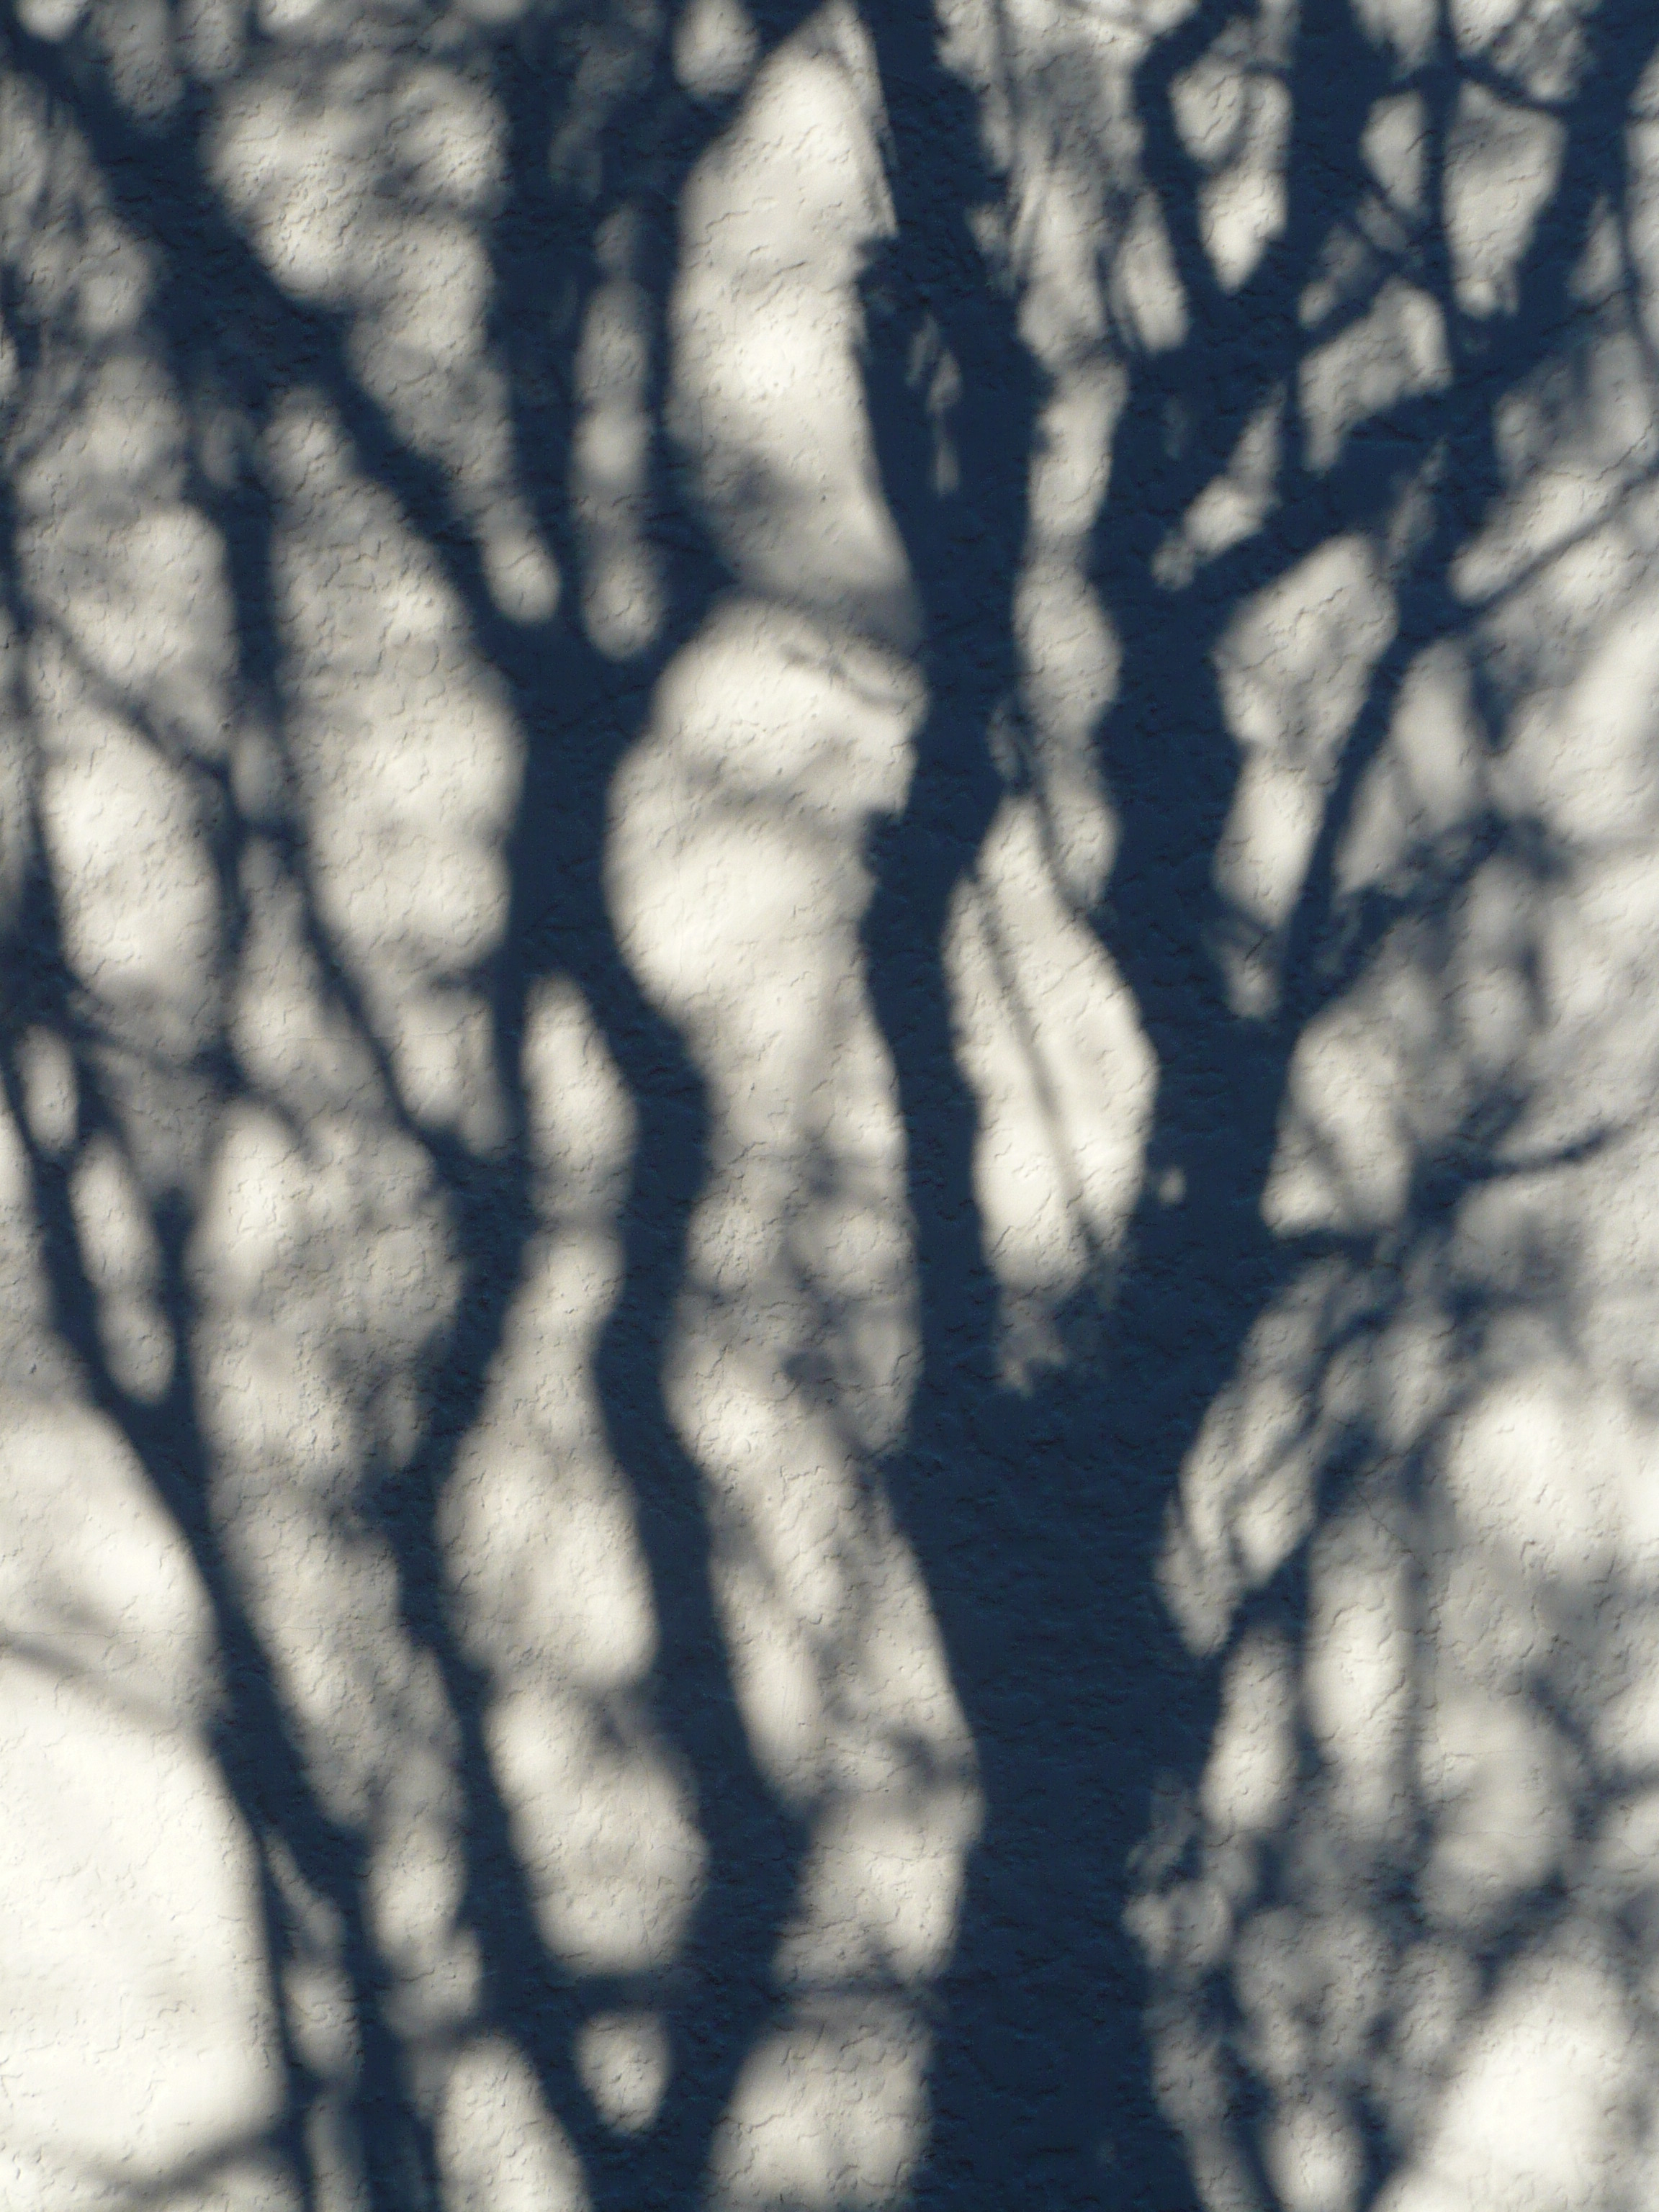 Shadow patterns photo